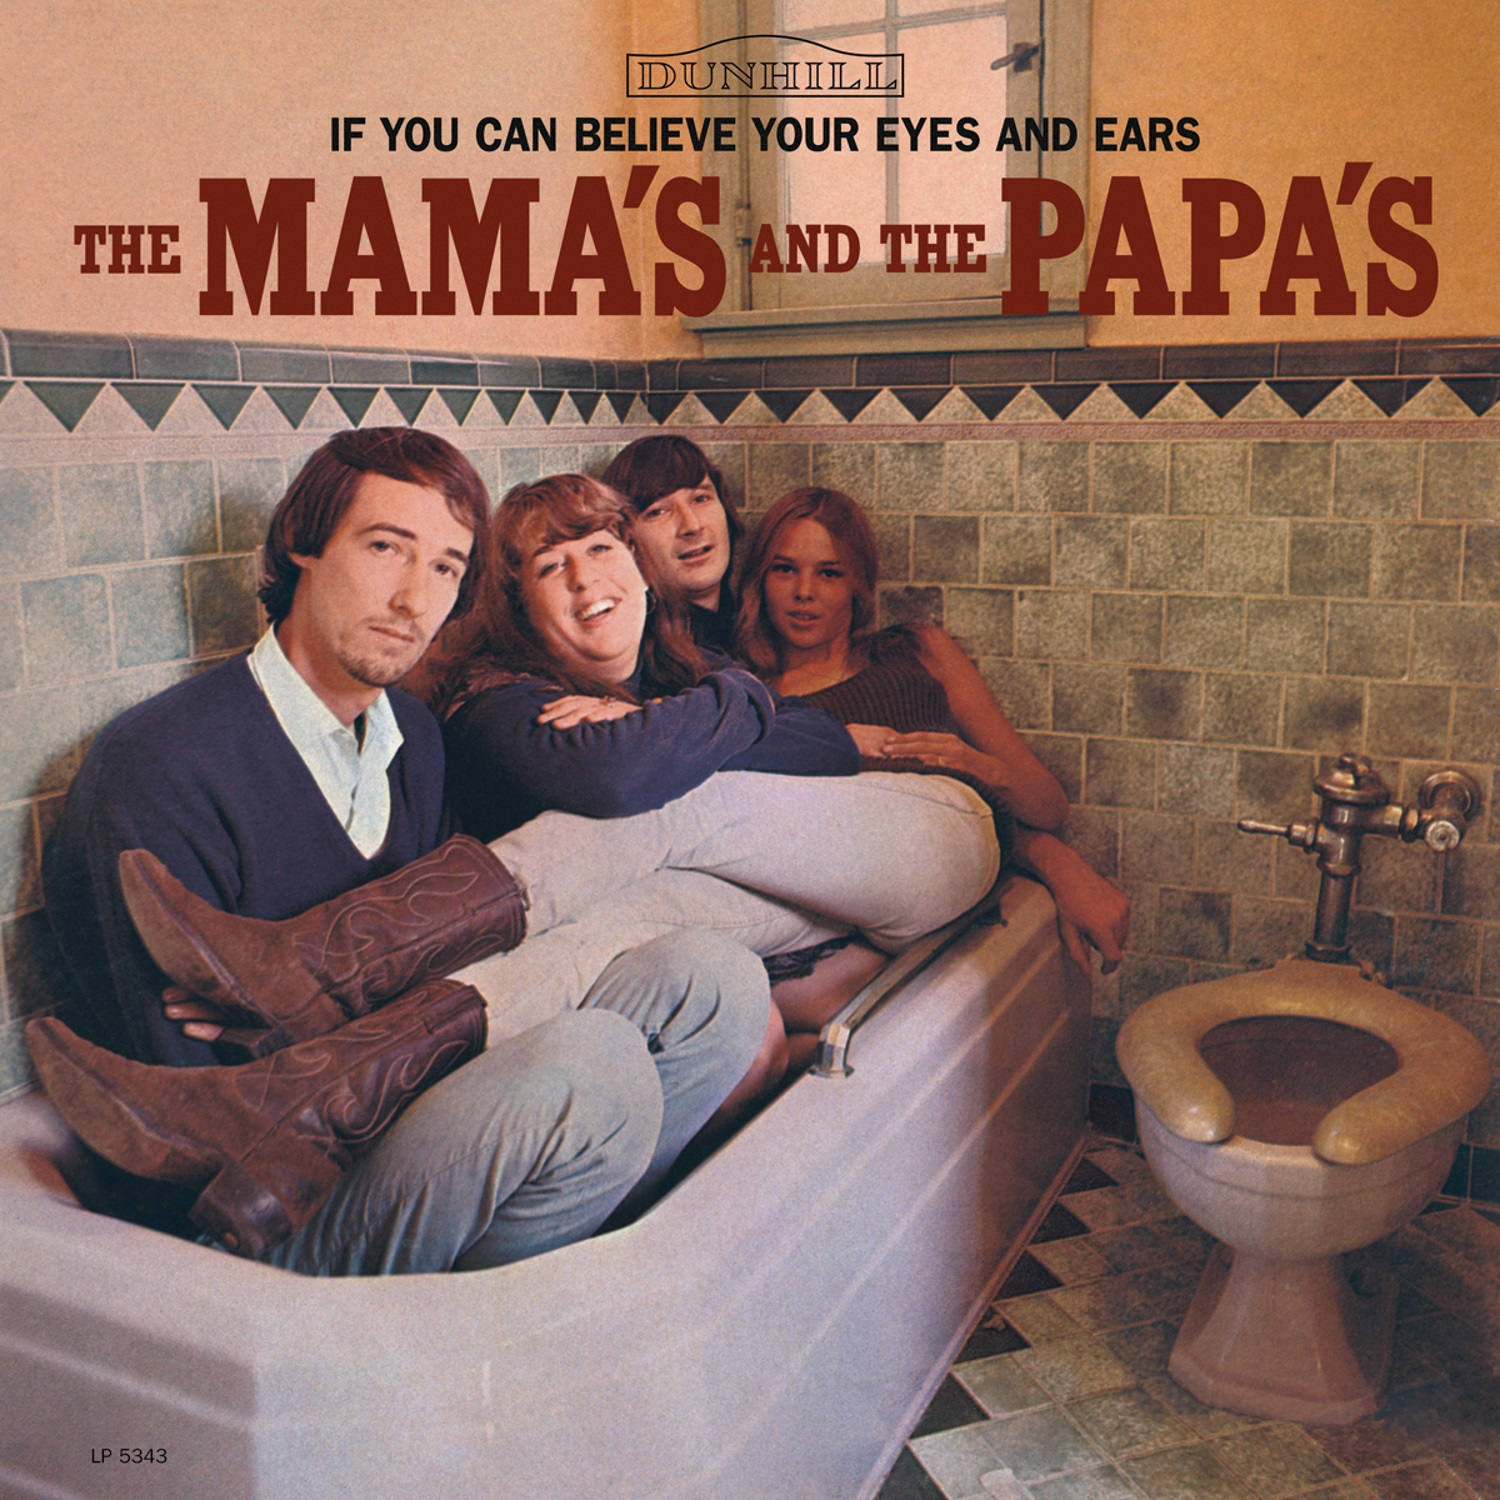 Mamas, The and the Papas - If You Can Believe Your Eyes and Ears MONO LIMITED EDITION CD